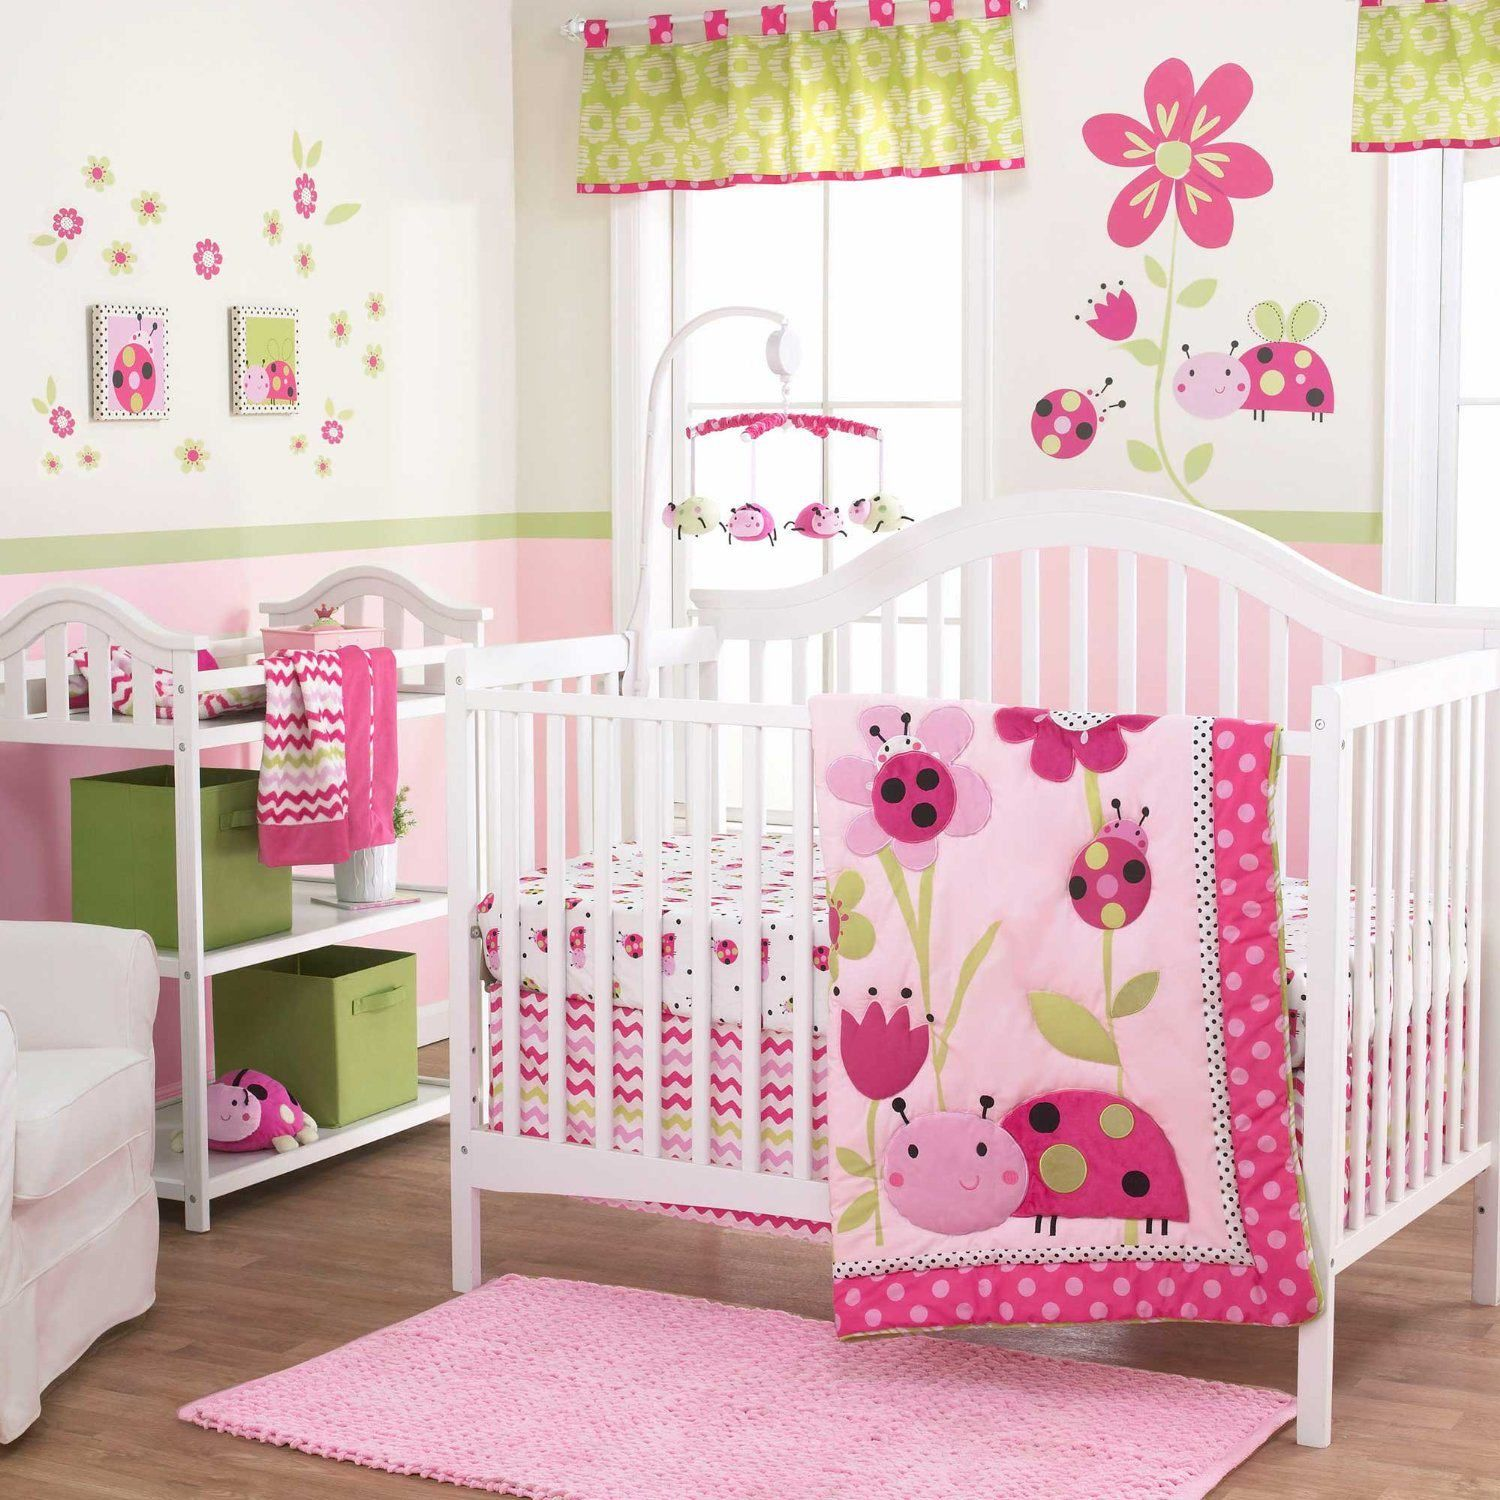 Picture This Lovely Lady Bug Nursery Bedding Decor For Your